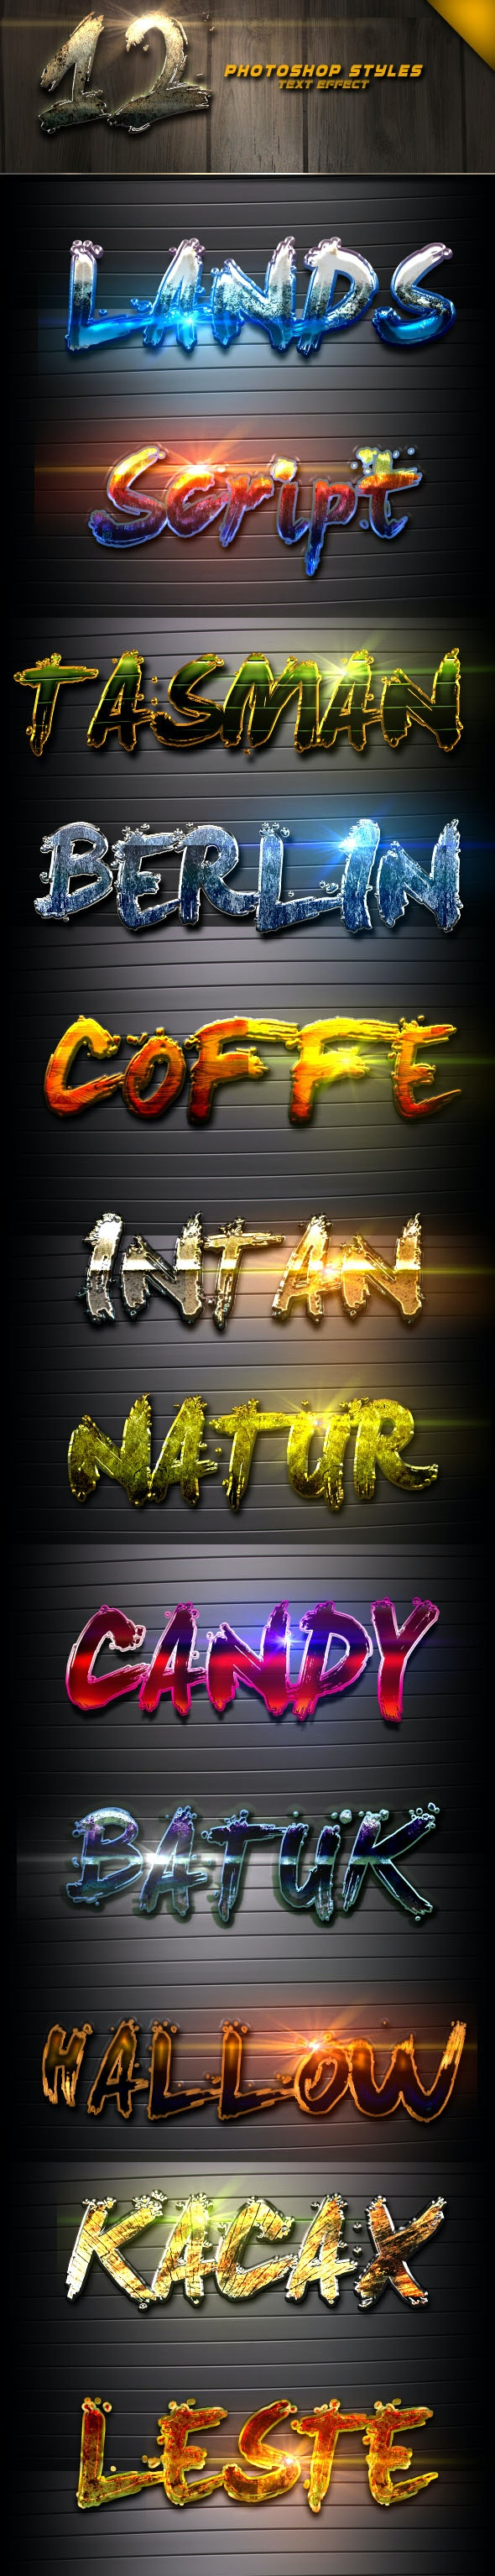 12 Photoshop text Effect Vol 4 - Text Effects Styles